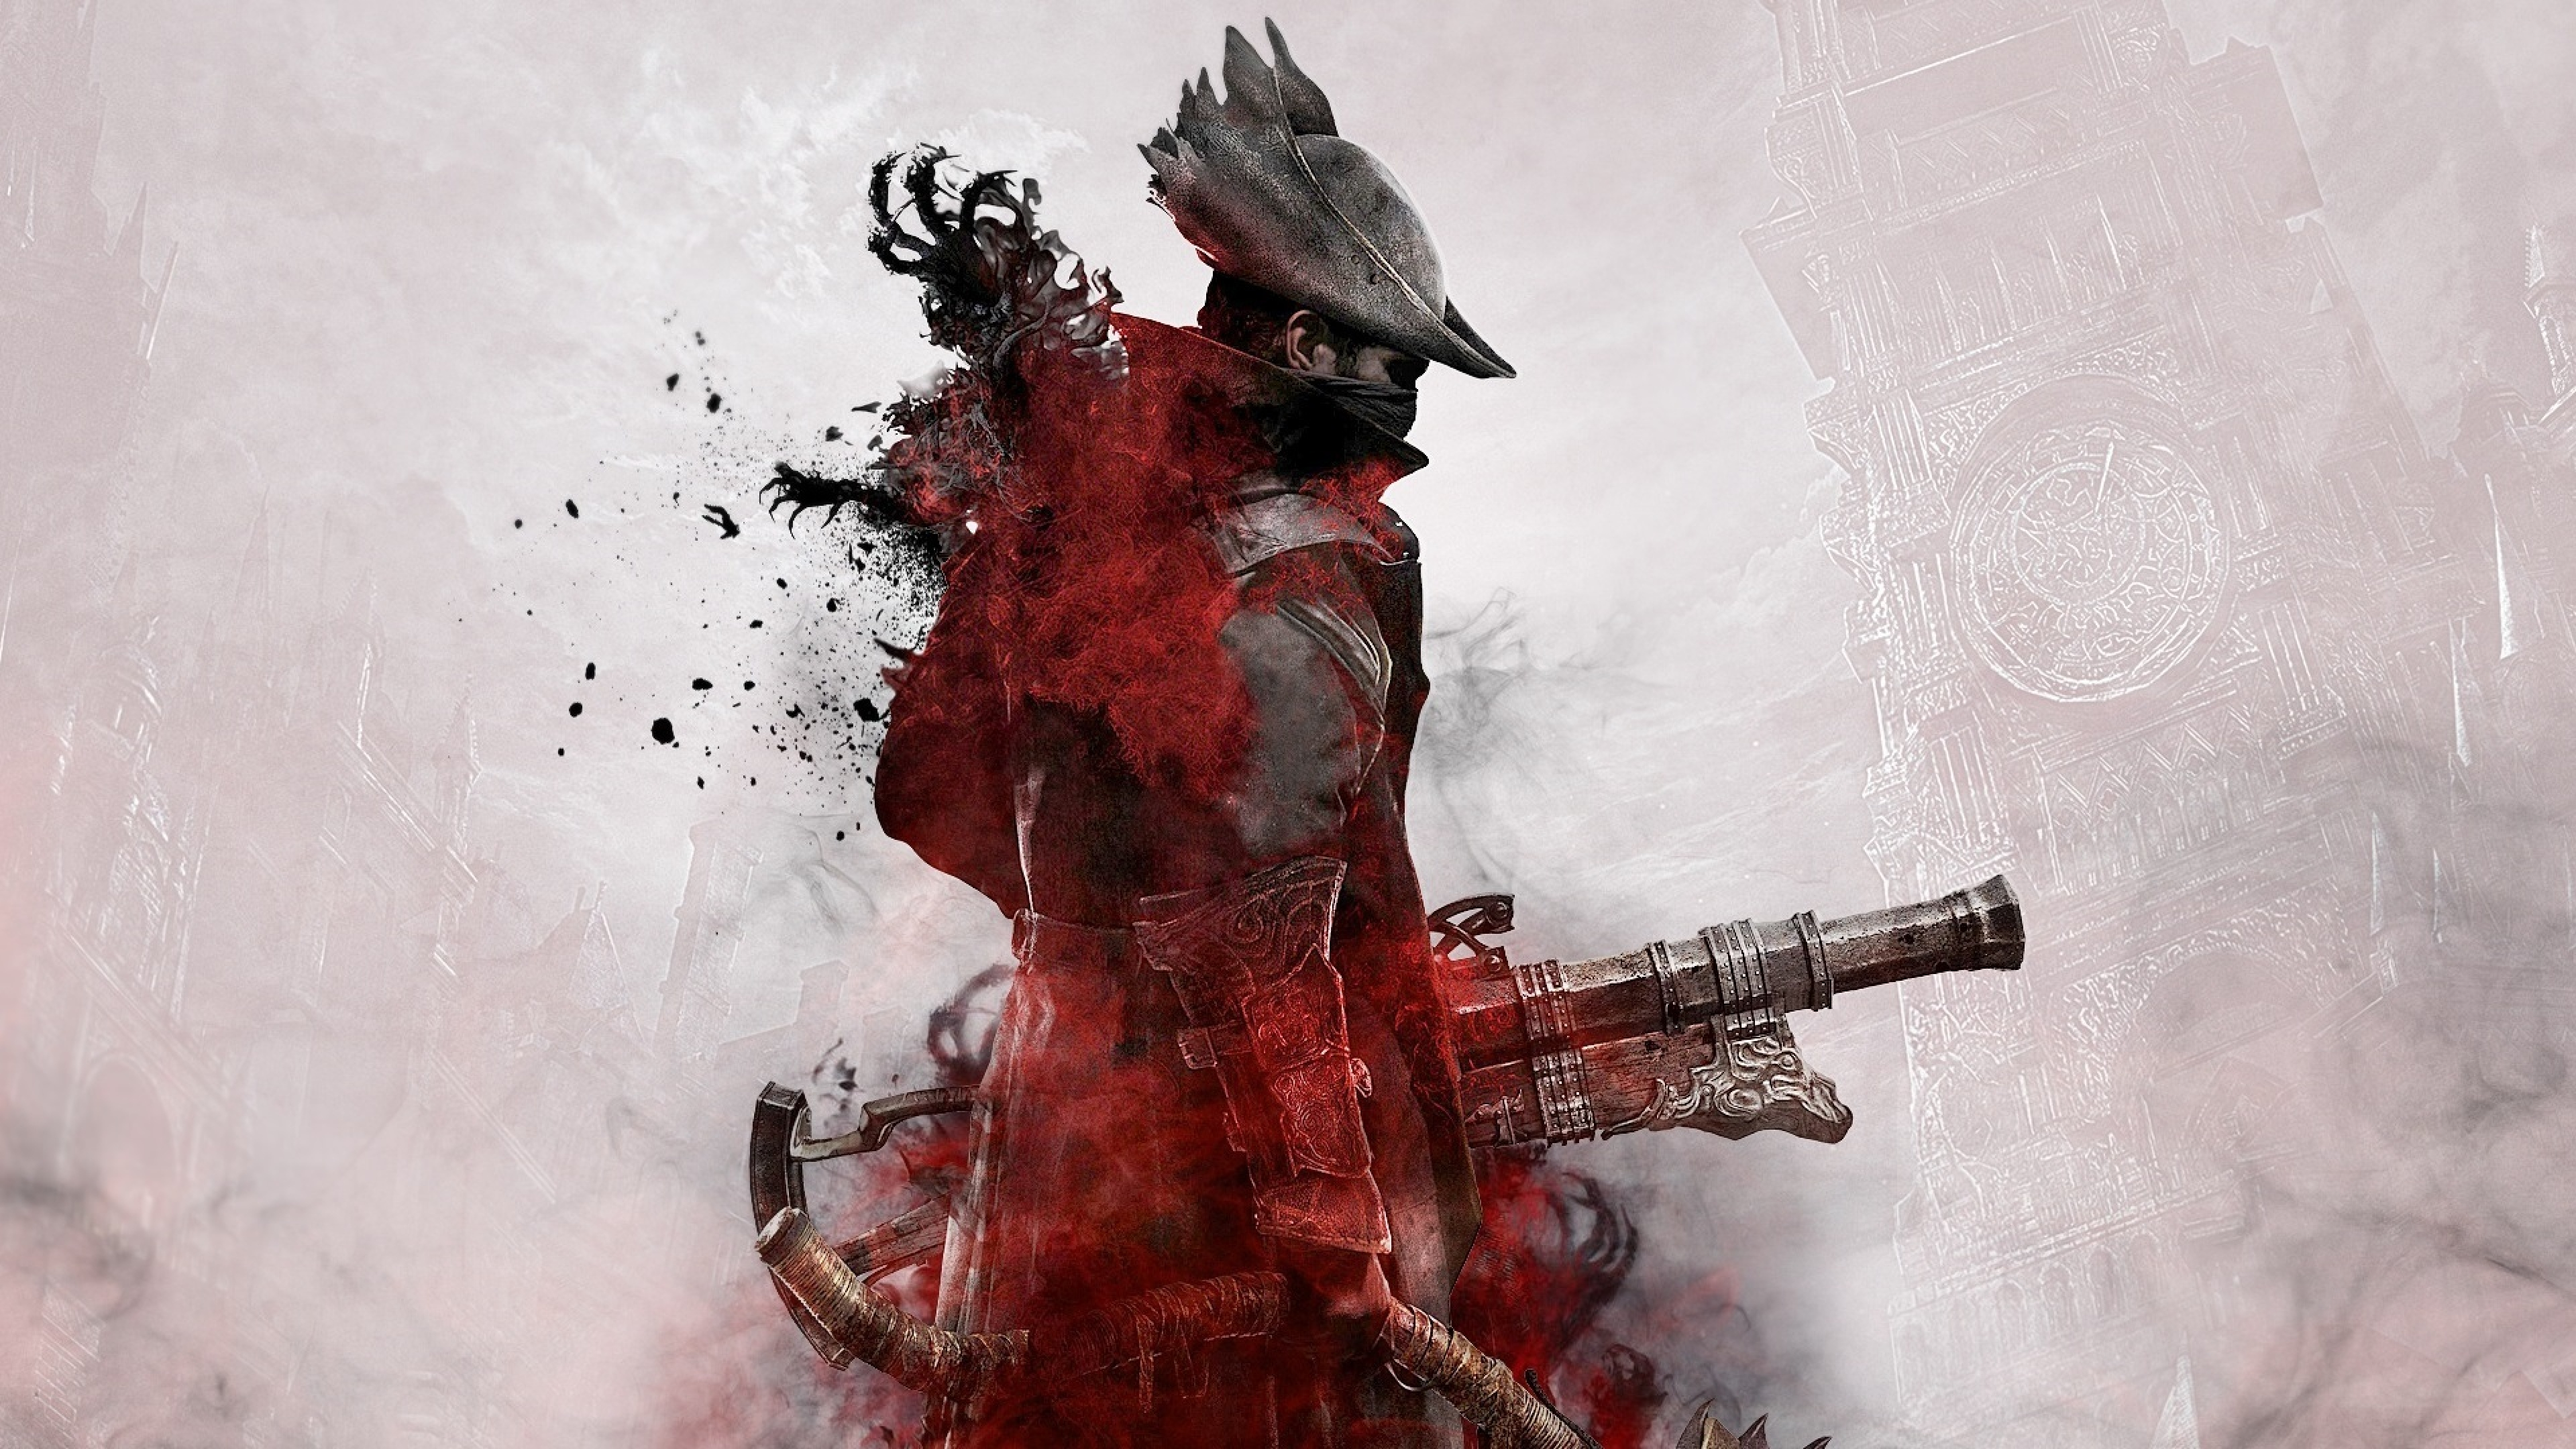 Full Hd 1080p Wallpapers Cars Bloodborne 2 4k Ps4wallpapers Com